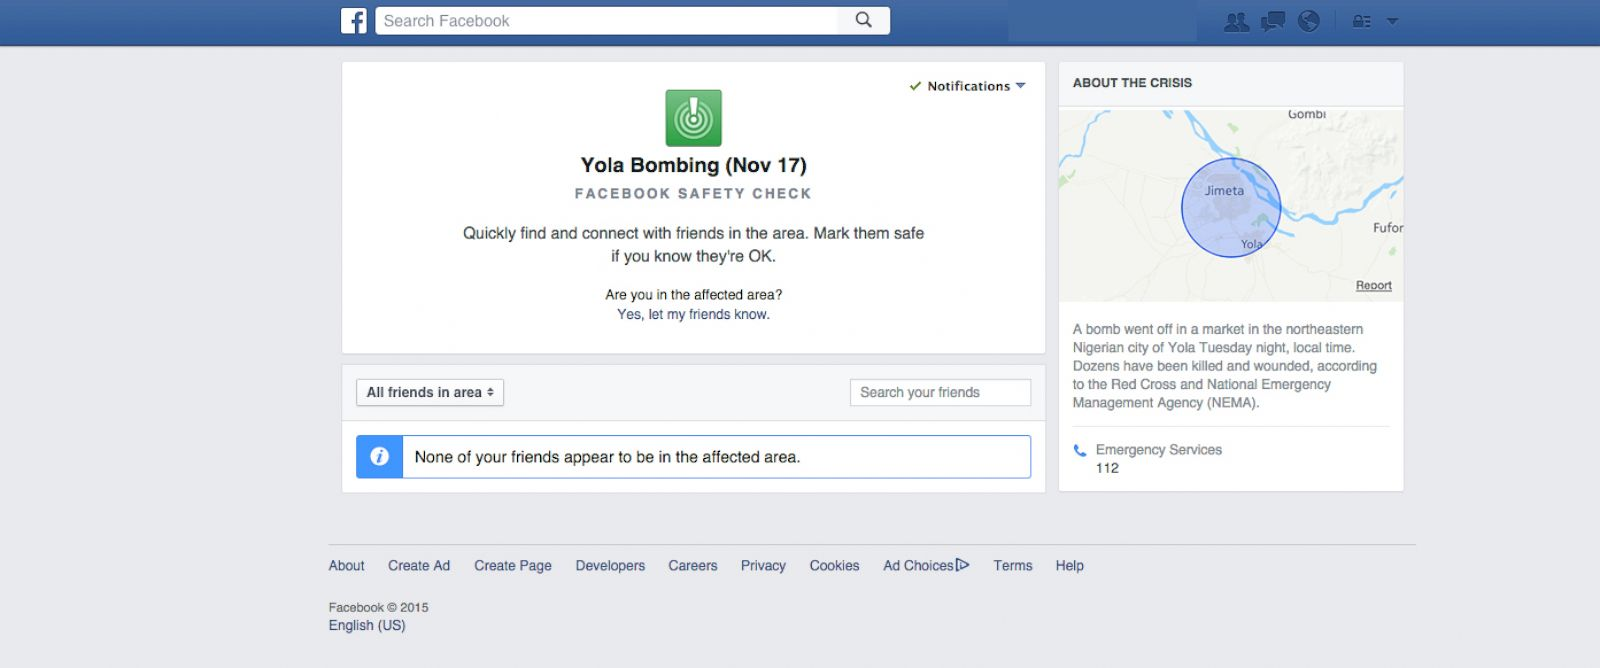 PHOTO:Mark Zuckerberg took to his Facebook wall to announce that they have activated the safety check on their site following the bomb blast in Yola, Nigeria.